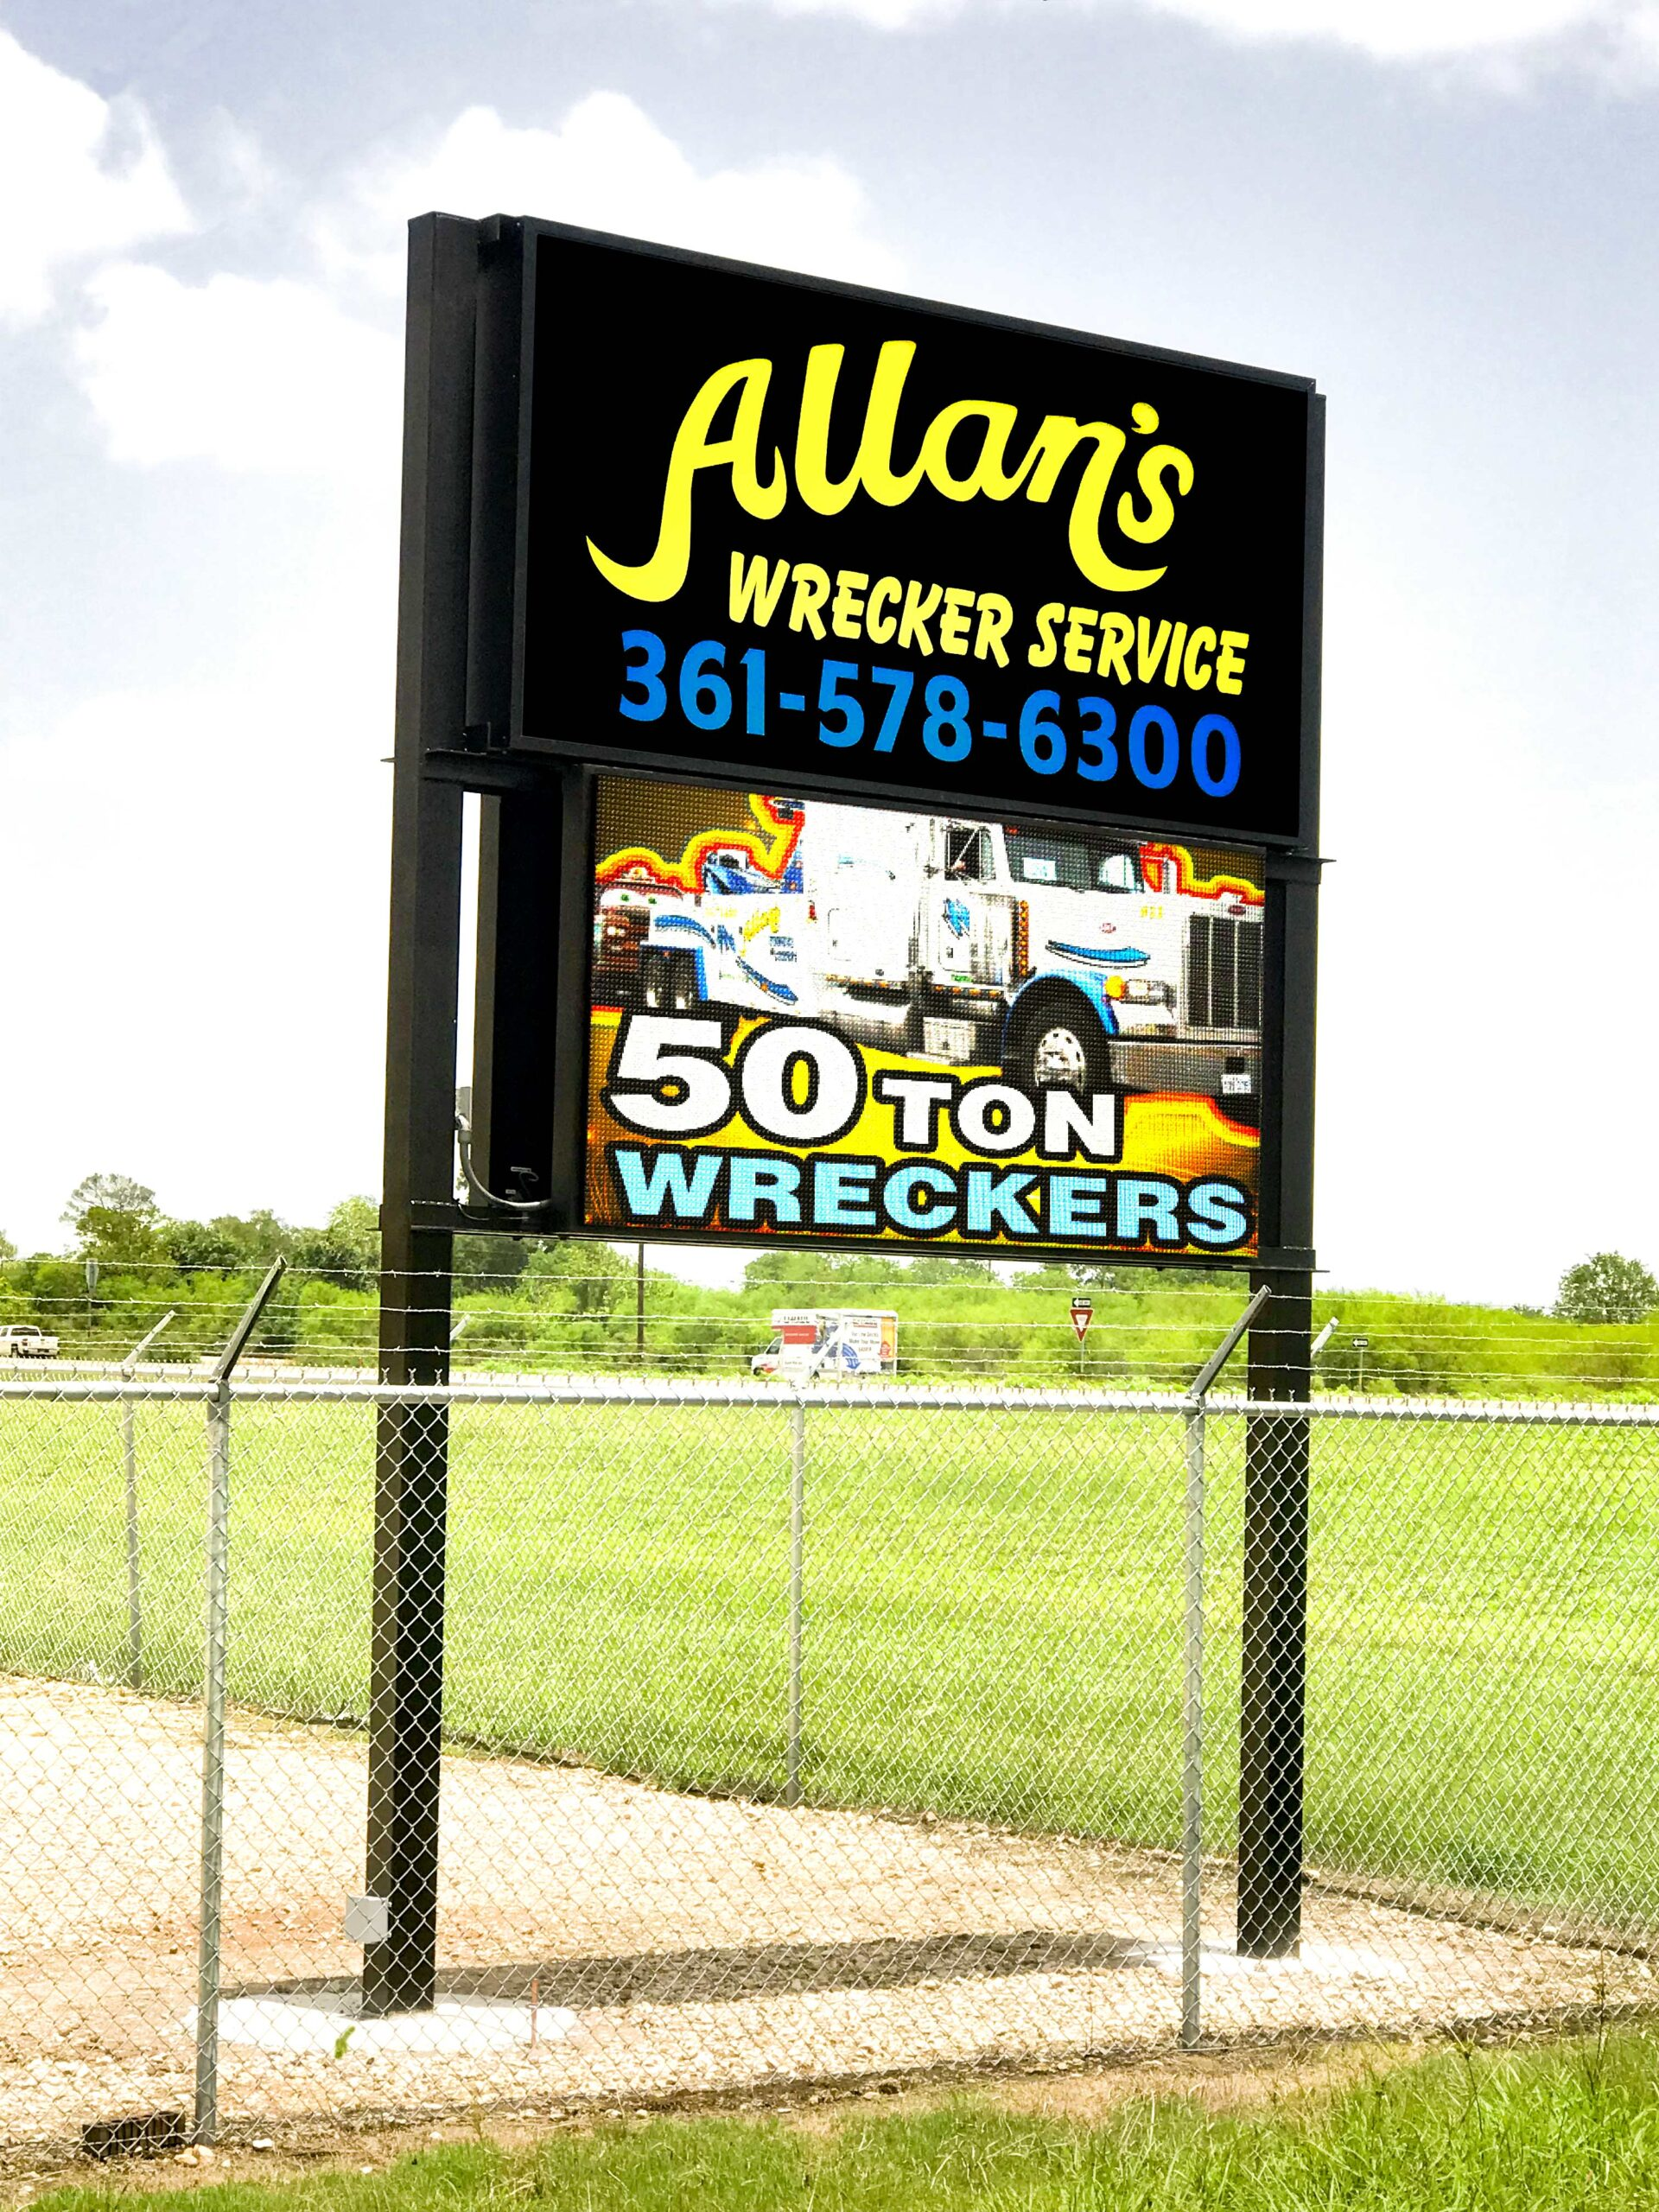 Allan's Wrecker Service 10mm LED Display Victoria TX